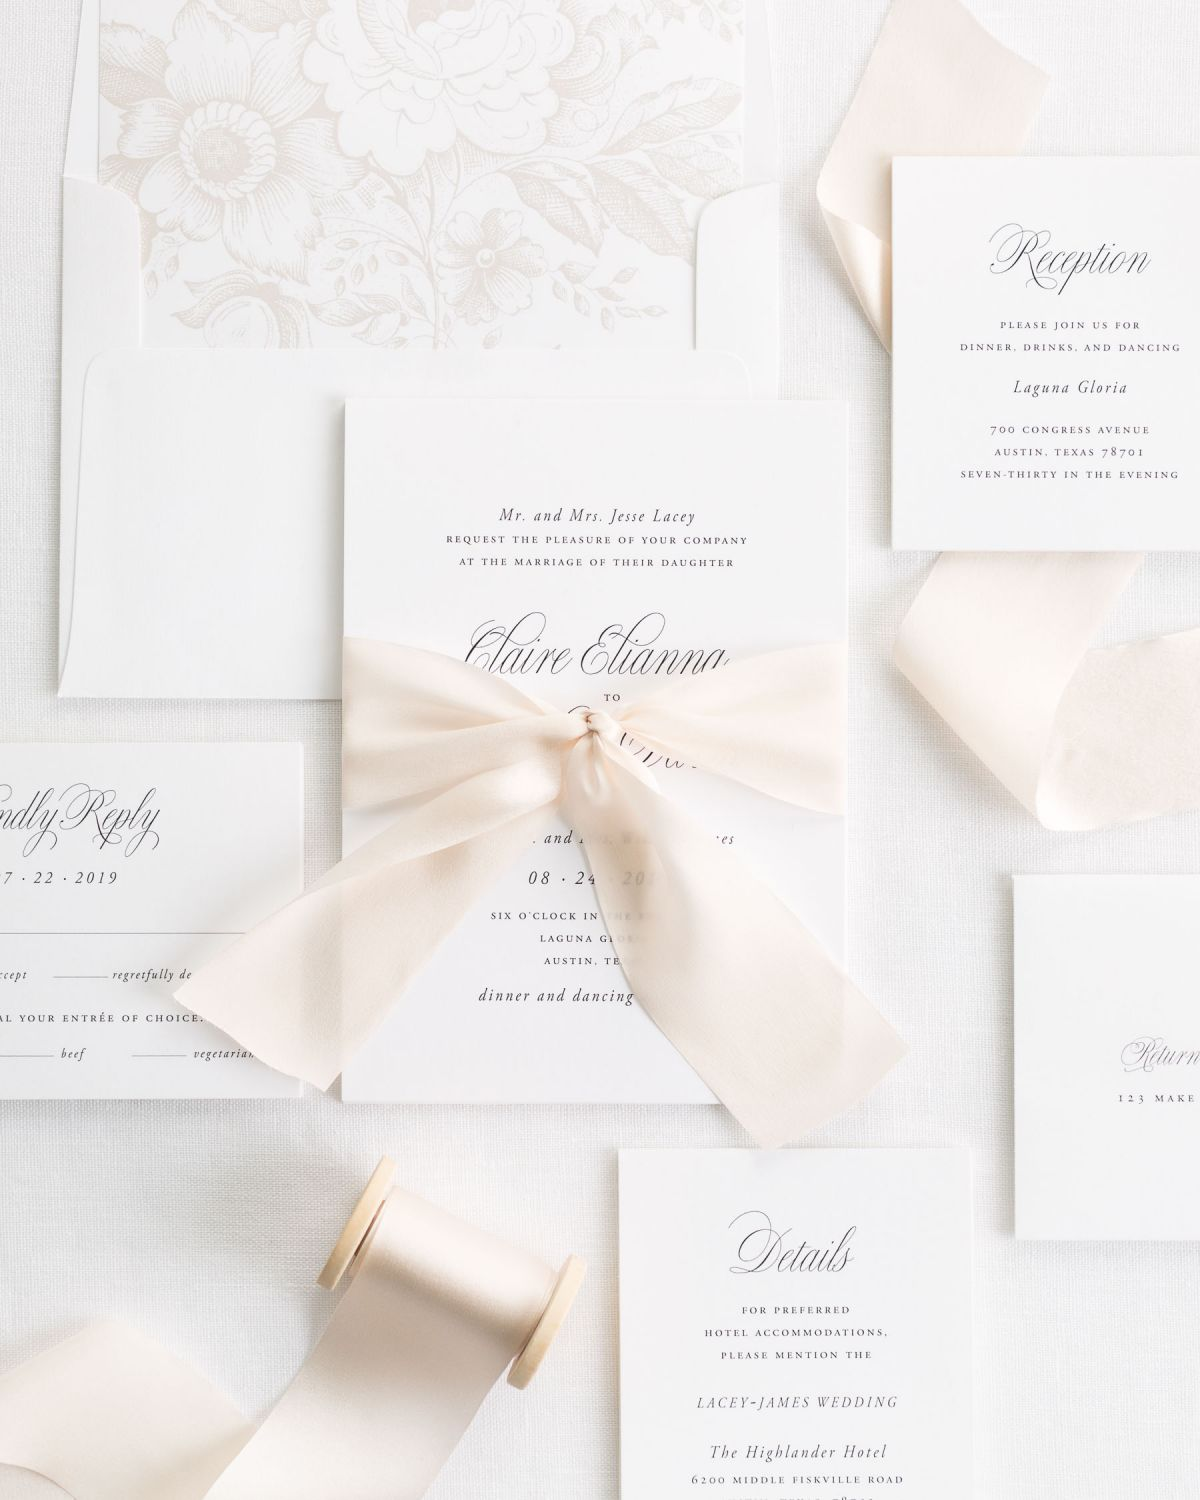 Complete Wedding Invitation Suite with Cashmere Ribbon